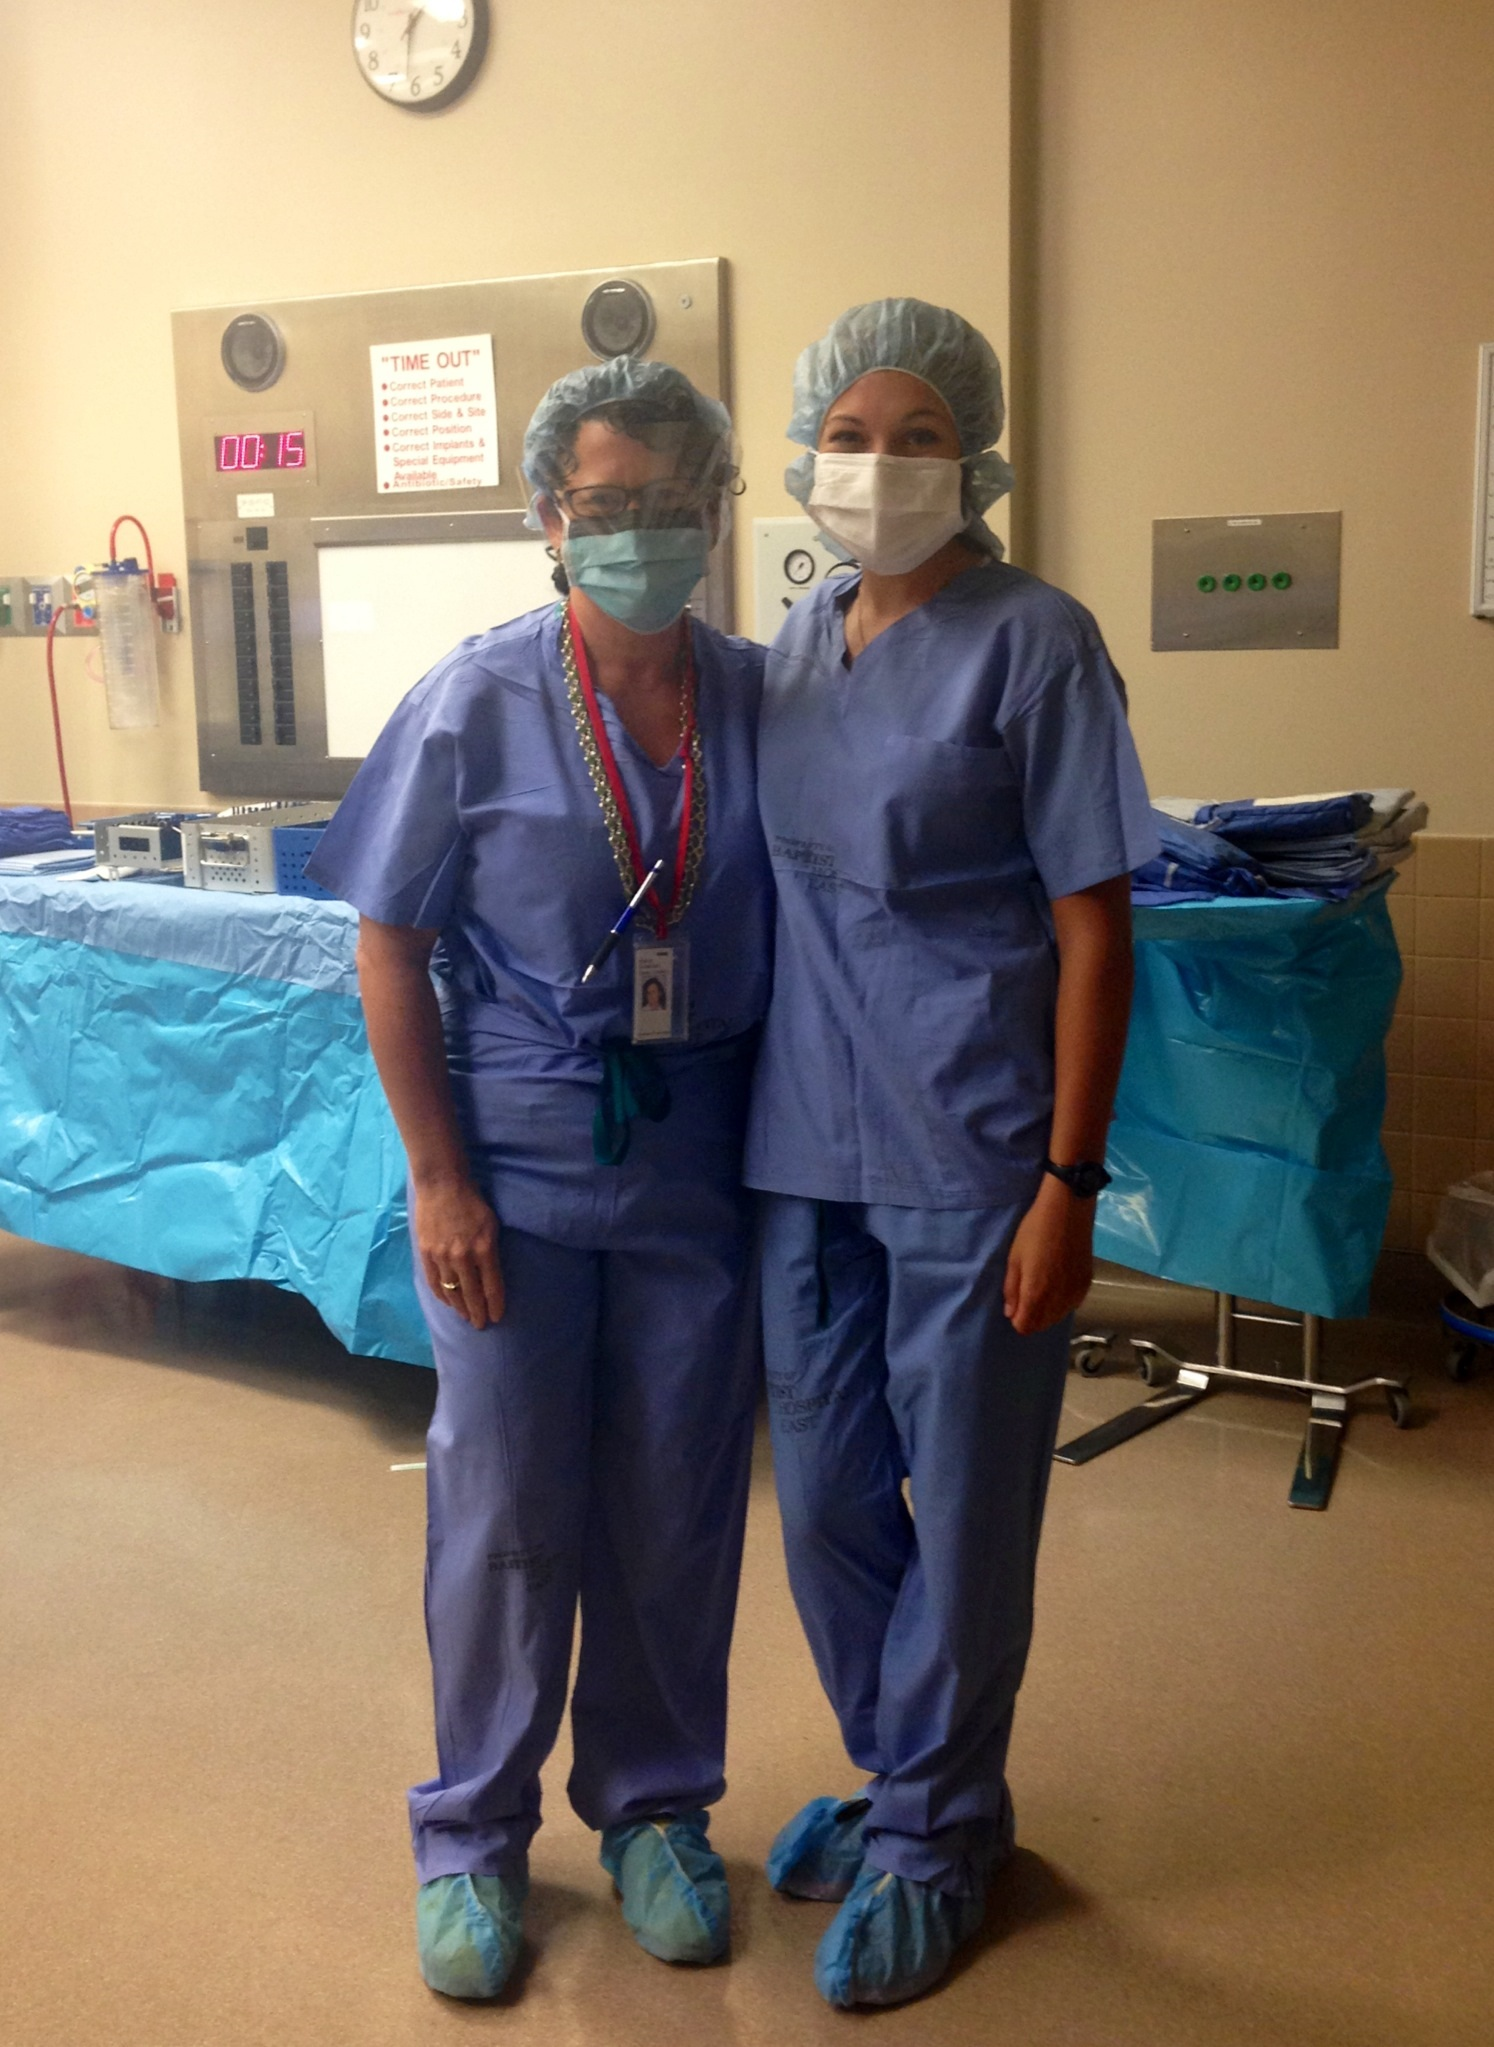 orthopedic surgeon Dr. Stacie Grossfeld and pre med intern Erica Ribenboim